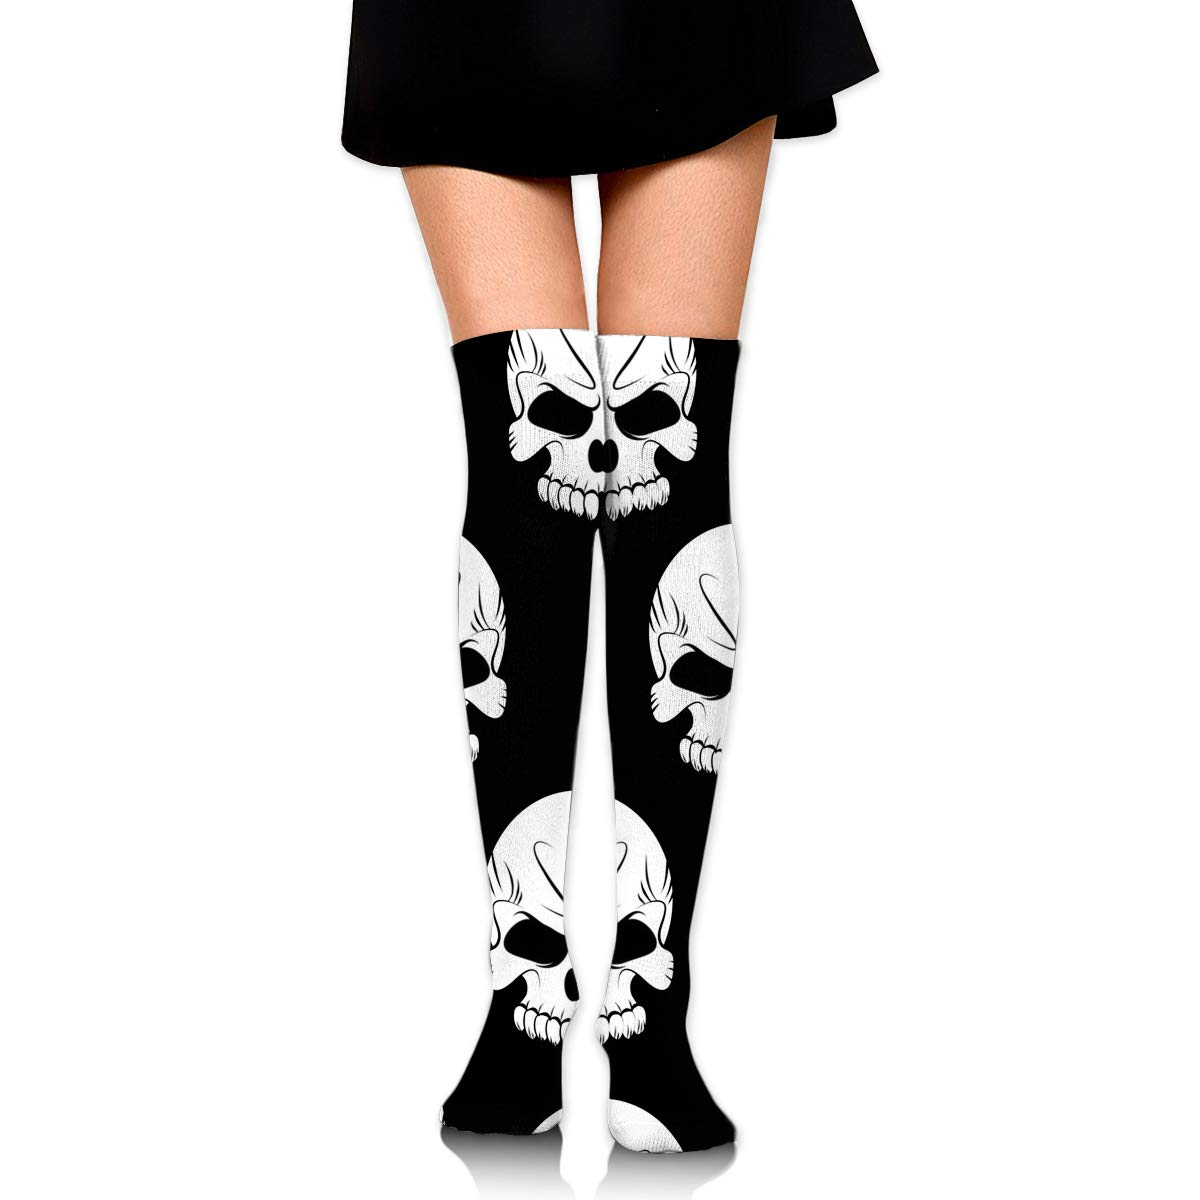 eda4c11f064 Amazon.com  SARA NELL Womens White Halloween Skeleton Skull Socks Over Knee  Thigh High Socks Stocking  Clothing